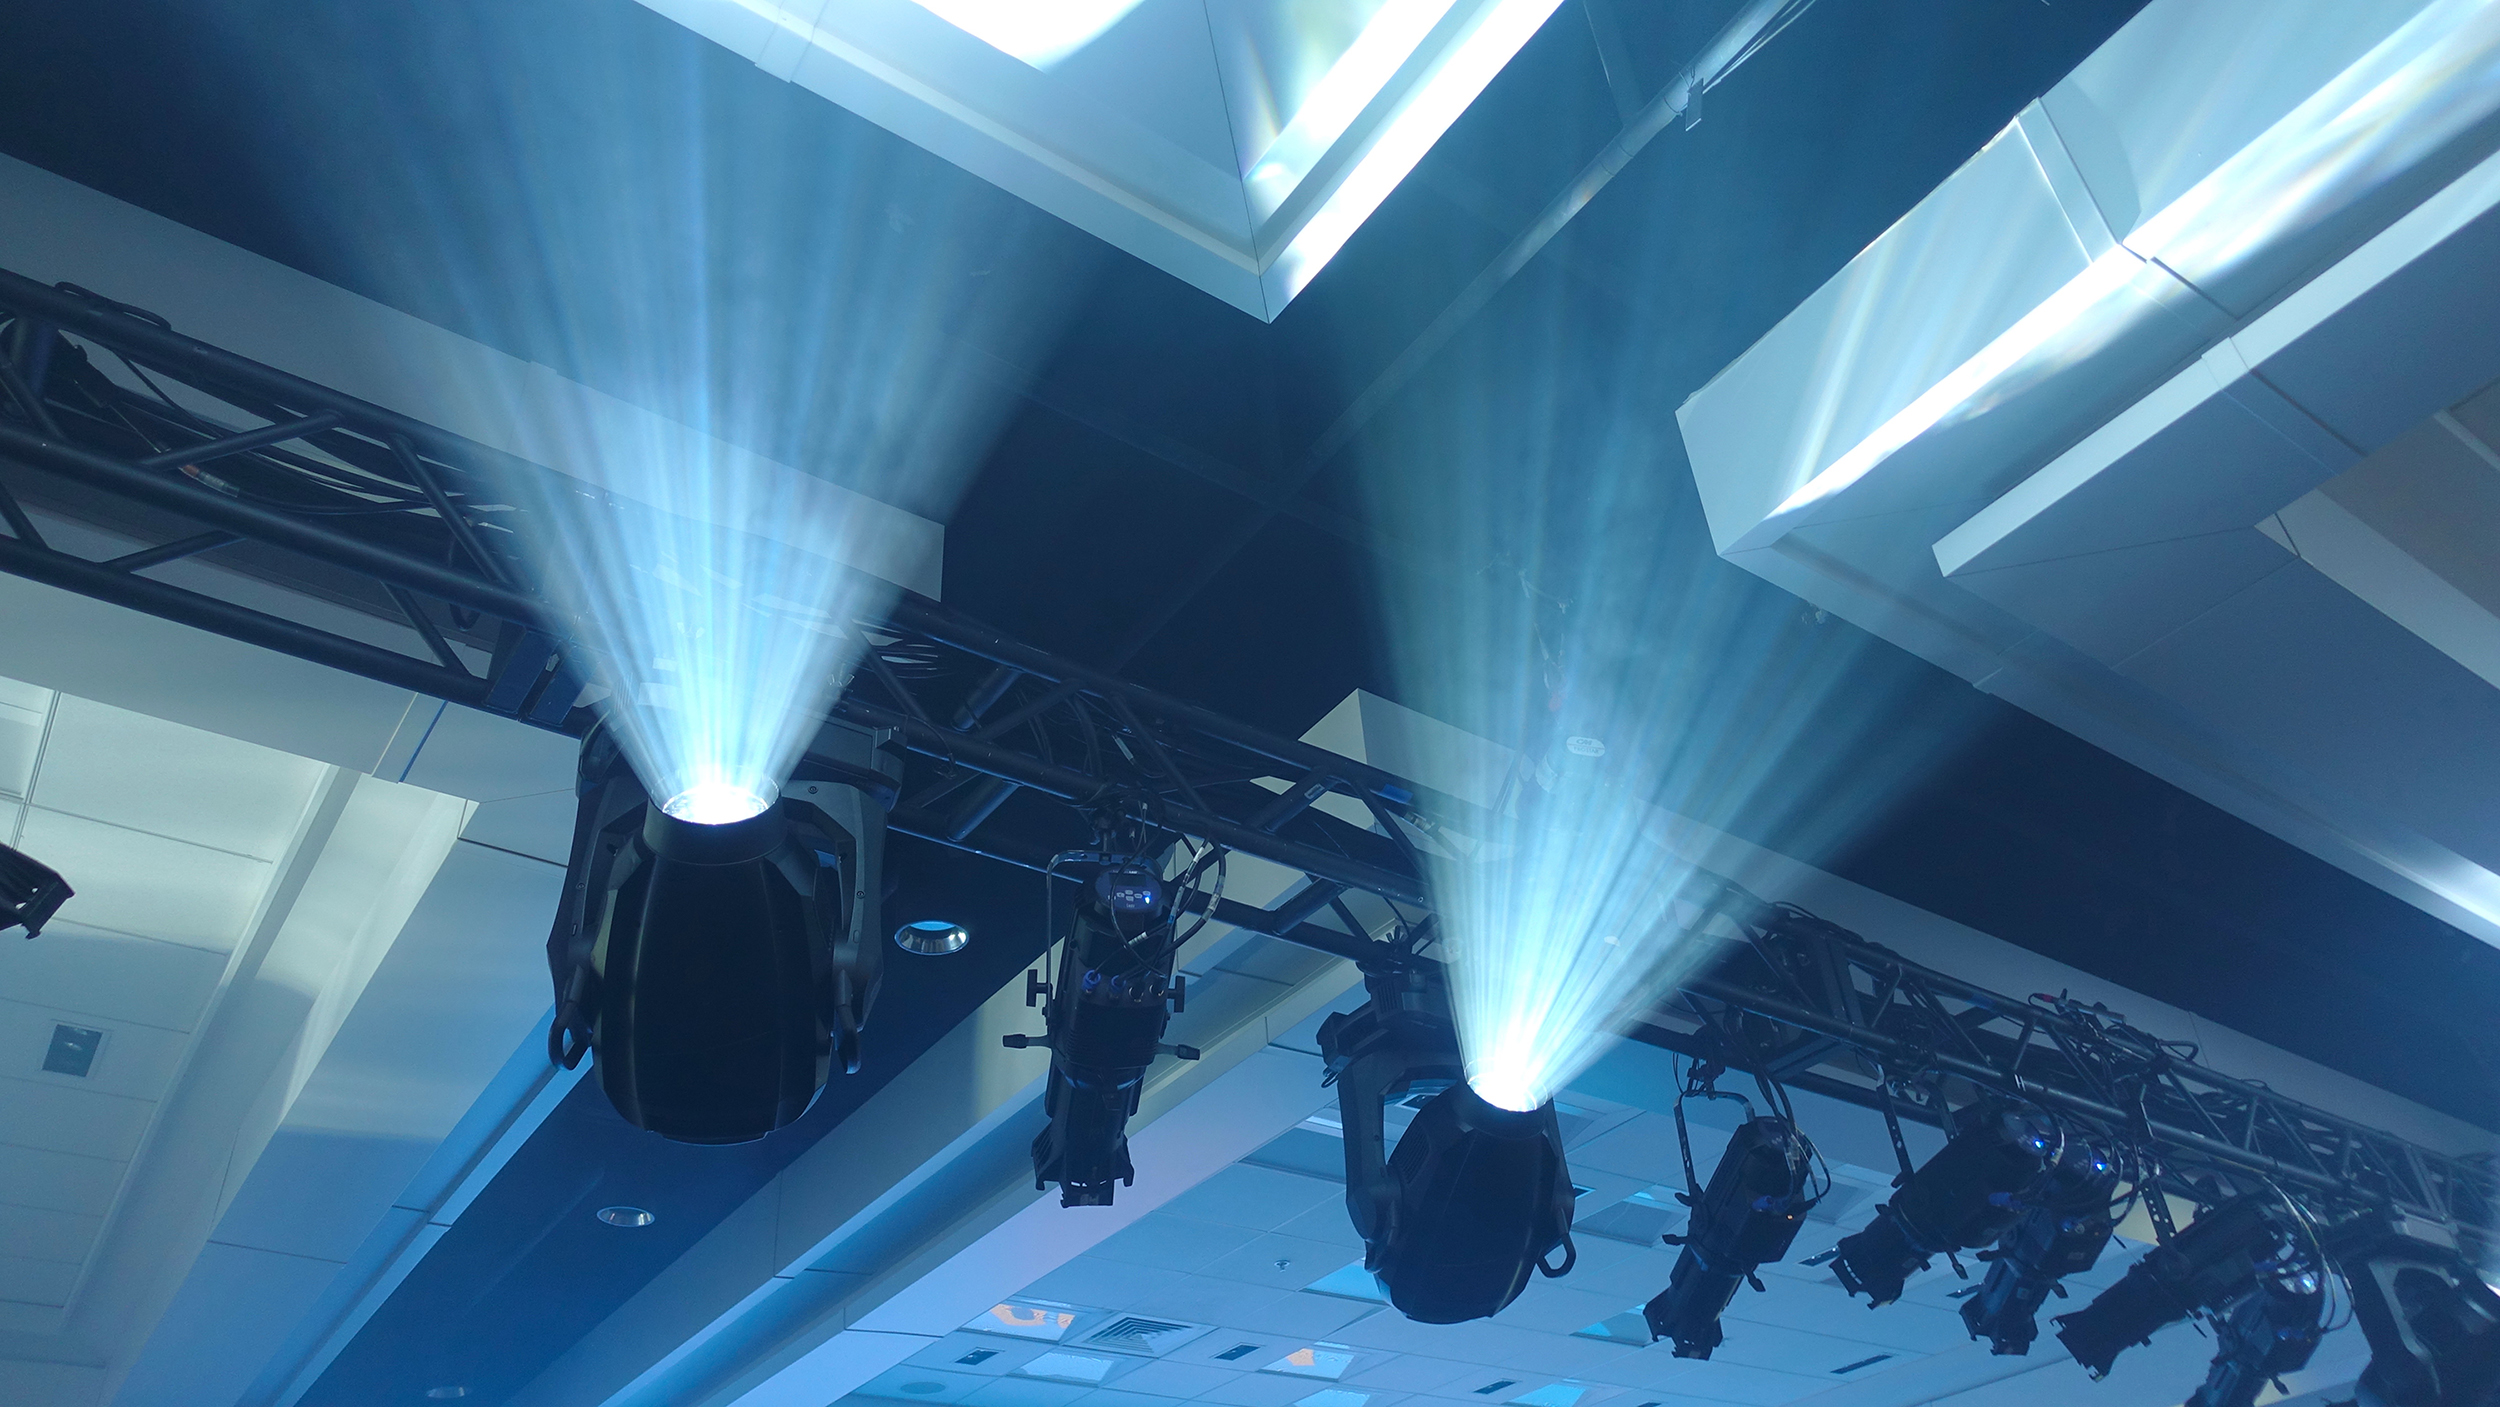 Truss spotlights and haze